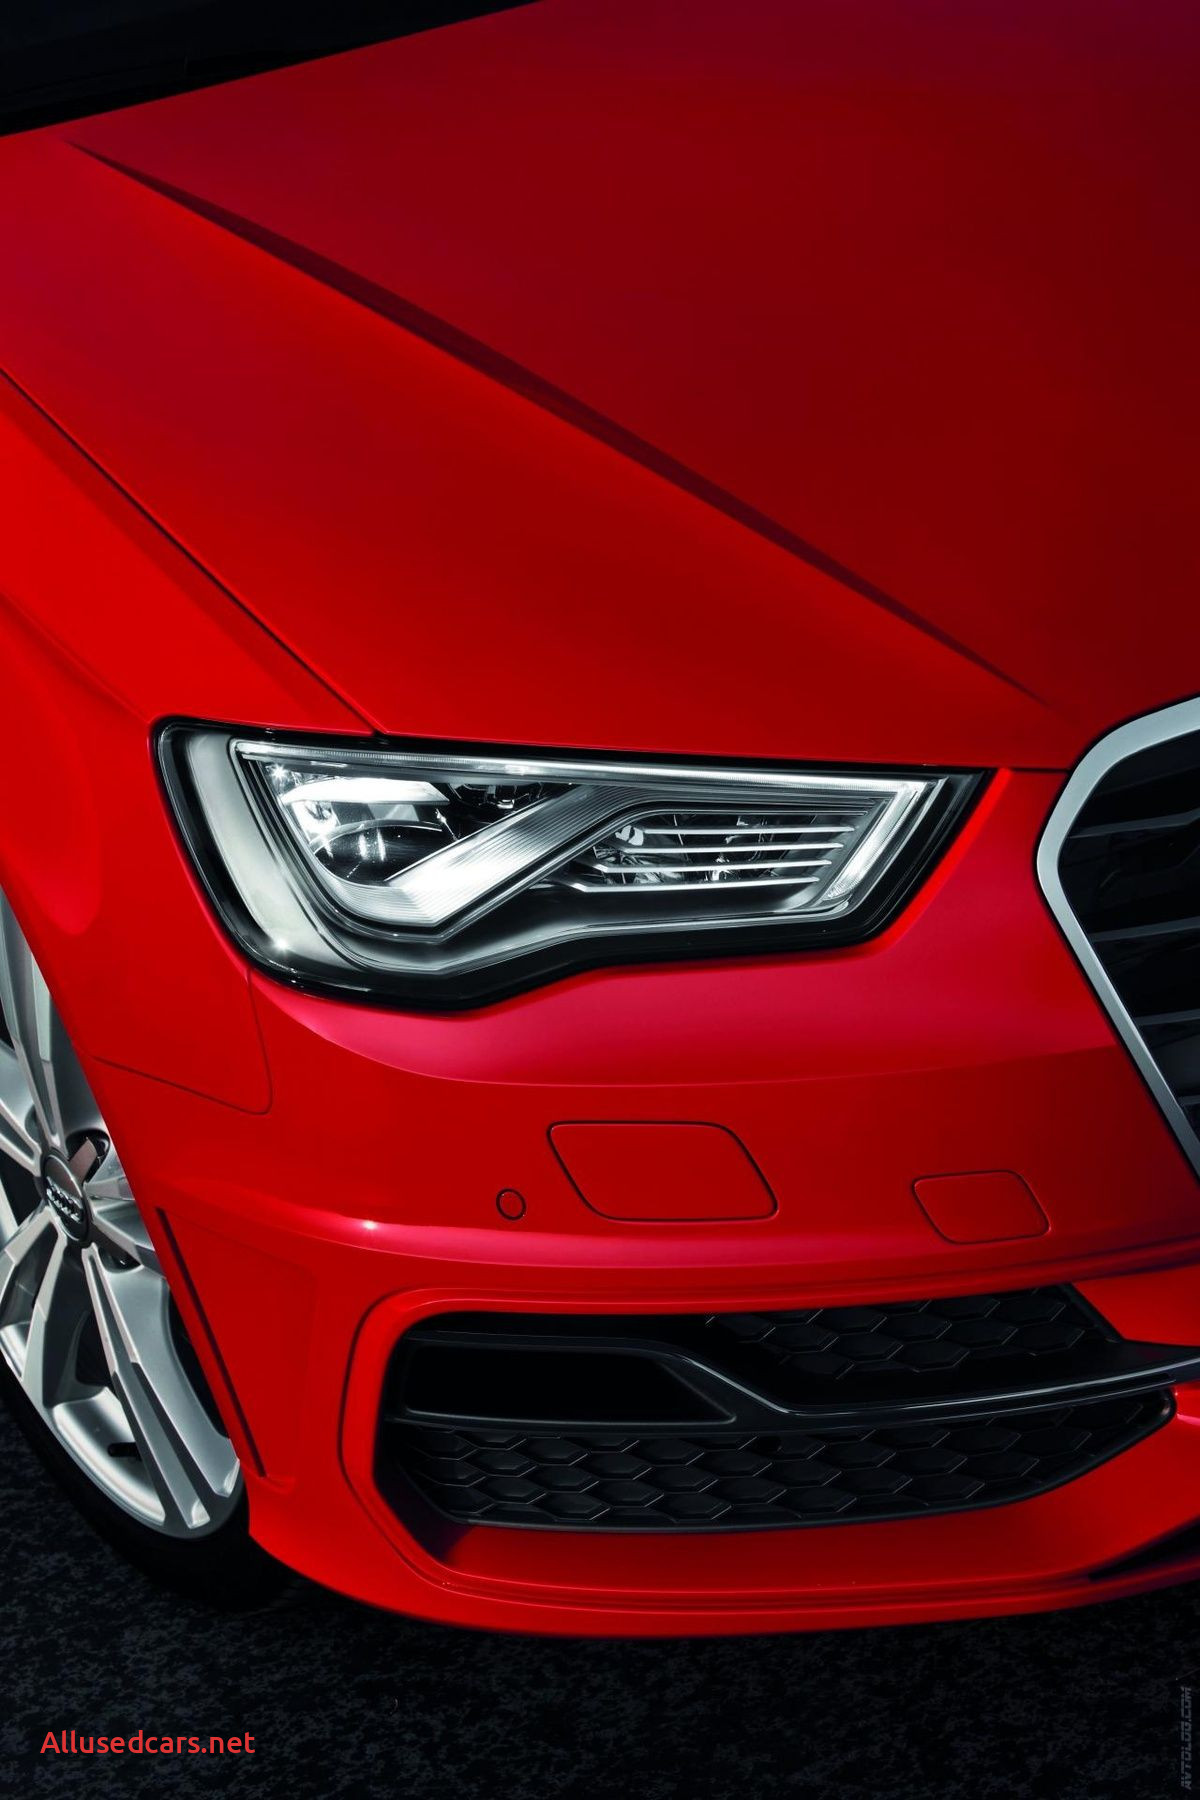 Audi A3 2013 Luxury Wel E to the Red Vroom Audi A3 Sportback S Line